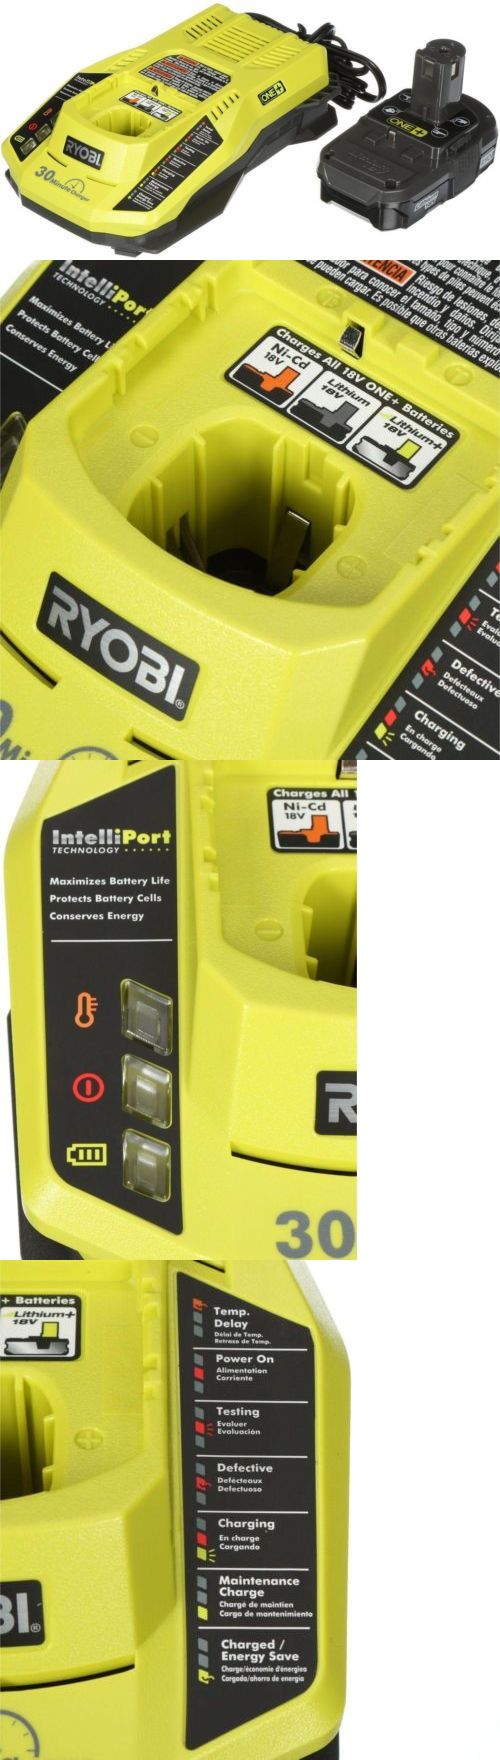 Batteries and Chargers 122840: Ryobi One+ 18-Volt Lithium-Ion Battery And Intelliport Charger Upgrade Kit -> BUY IT NOW ONLY: $56.97 on eBay!